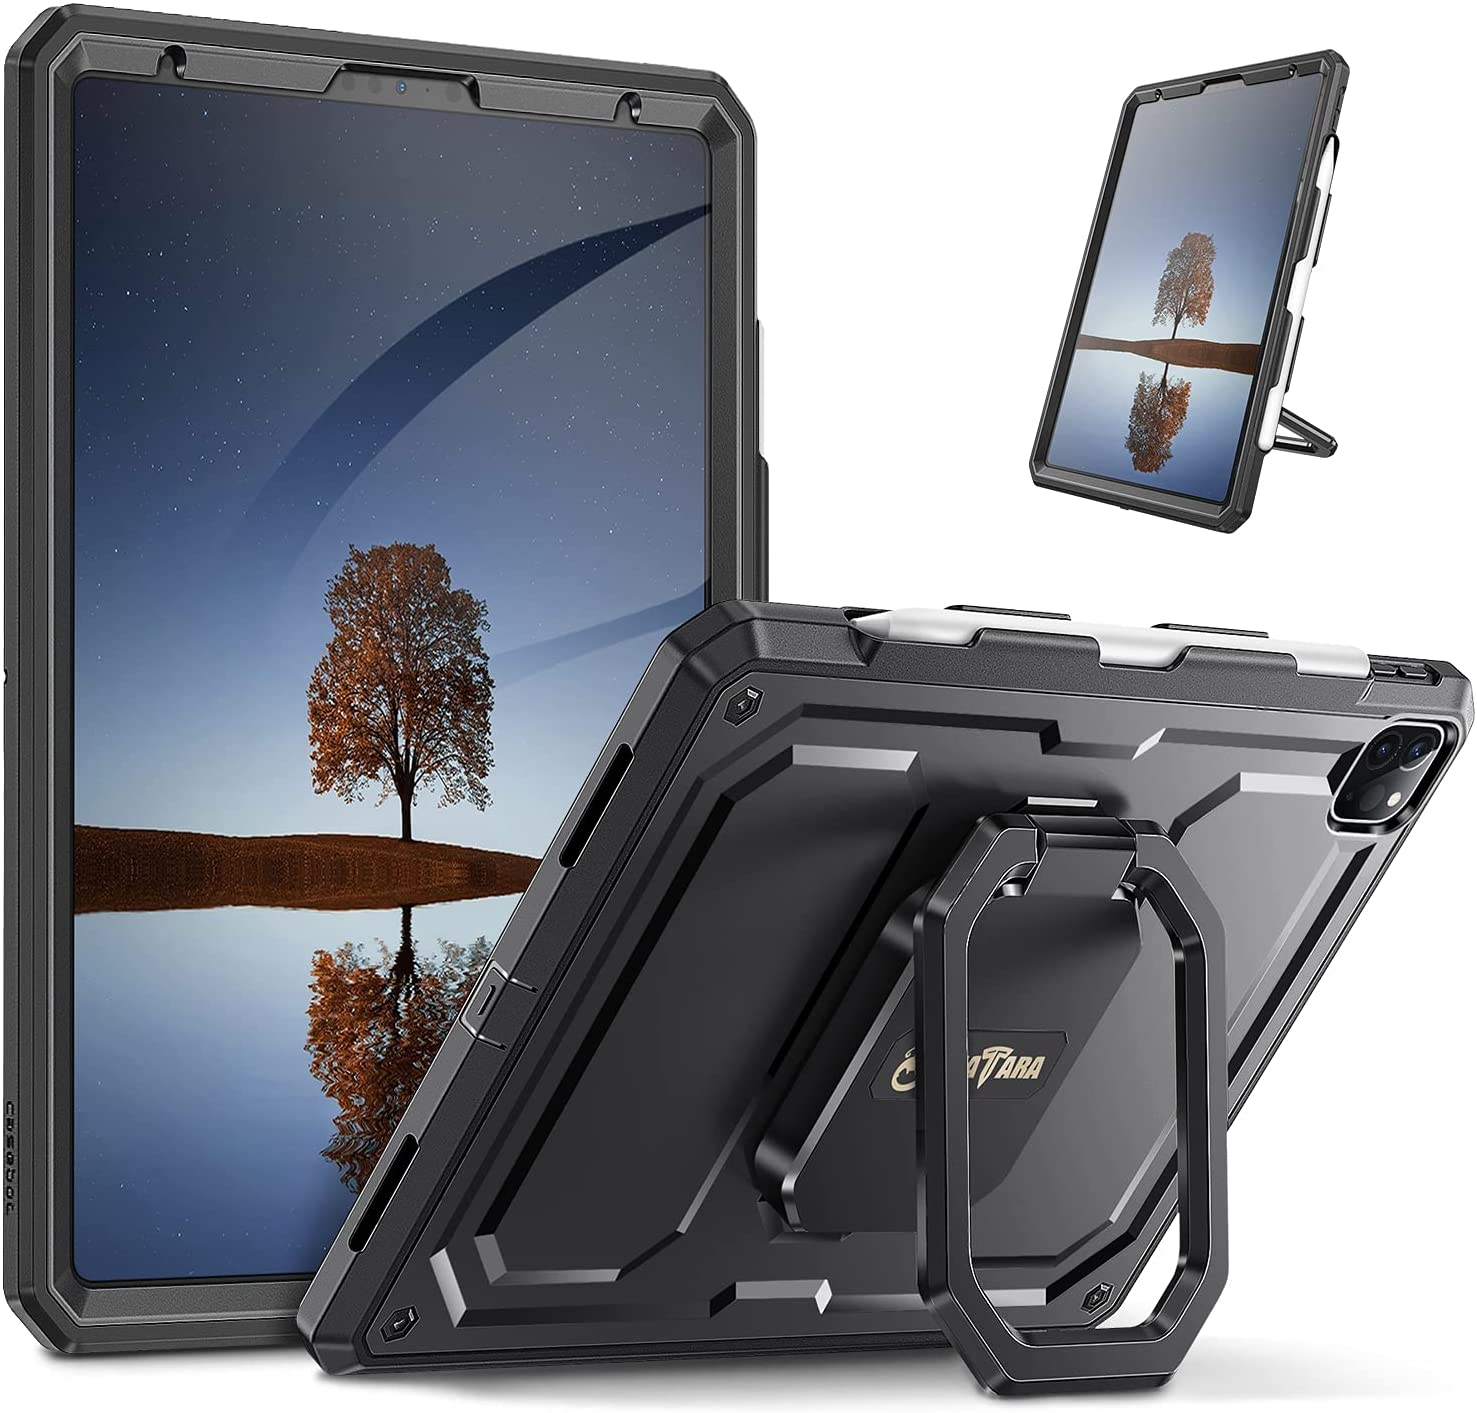 Fintie Case for iPad Pro 11-inch (3rd Generation) 2021 / iPad Pro 11 2020 & 2018 - [Tuatara Magic Ring] 360 Degree Rotating Shockproof Rugged Stand Cover with Screen Protector, Pencil Holder, Black